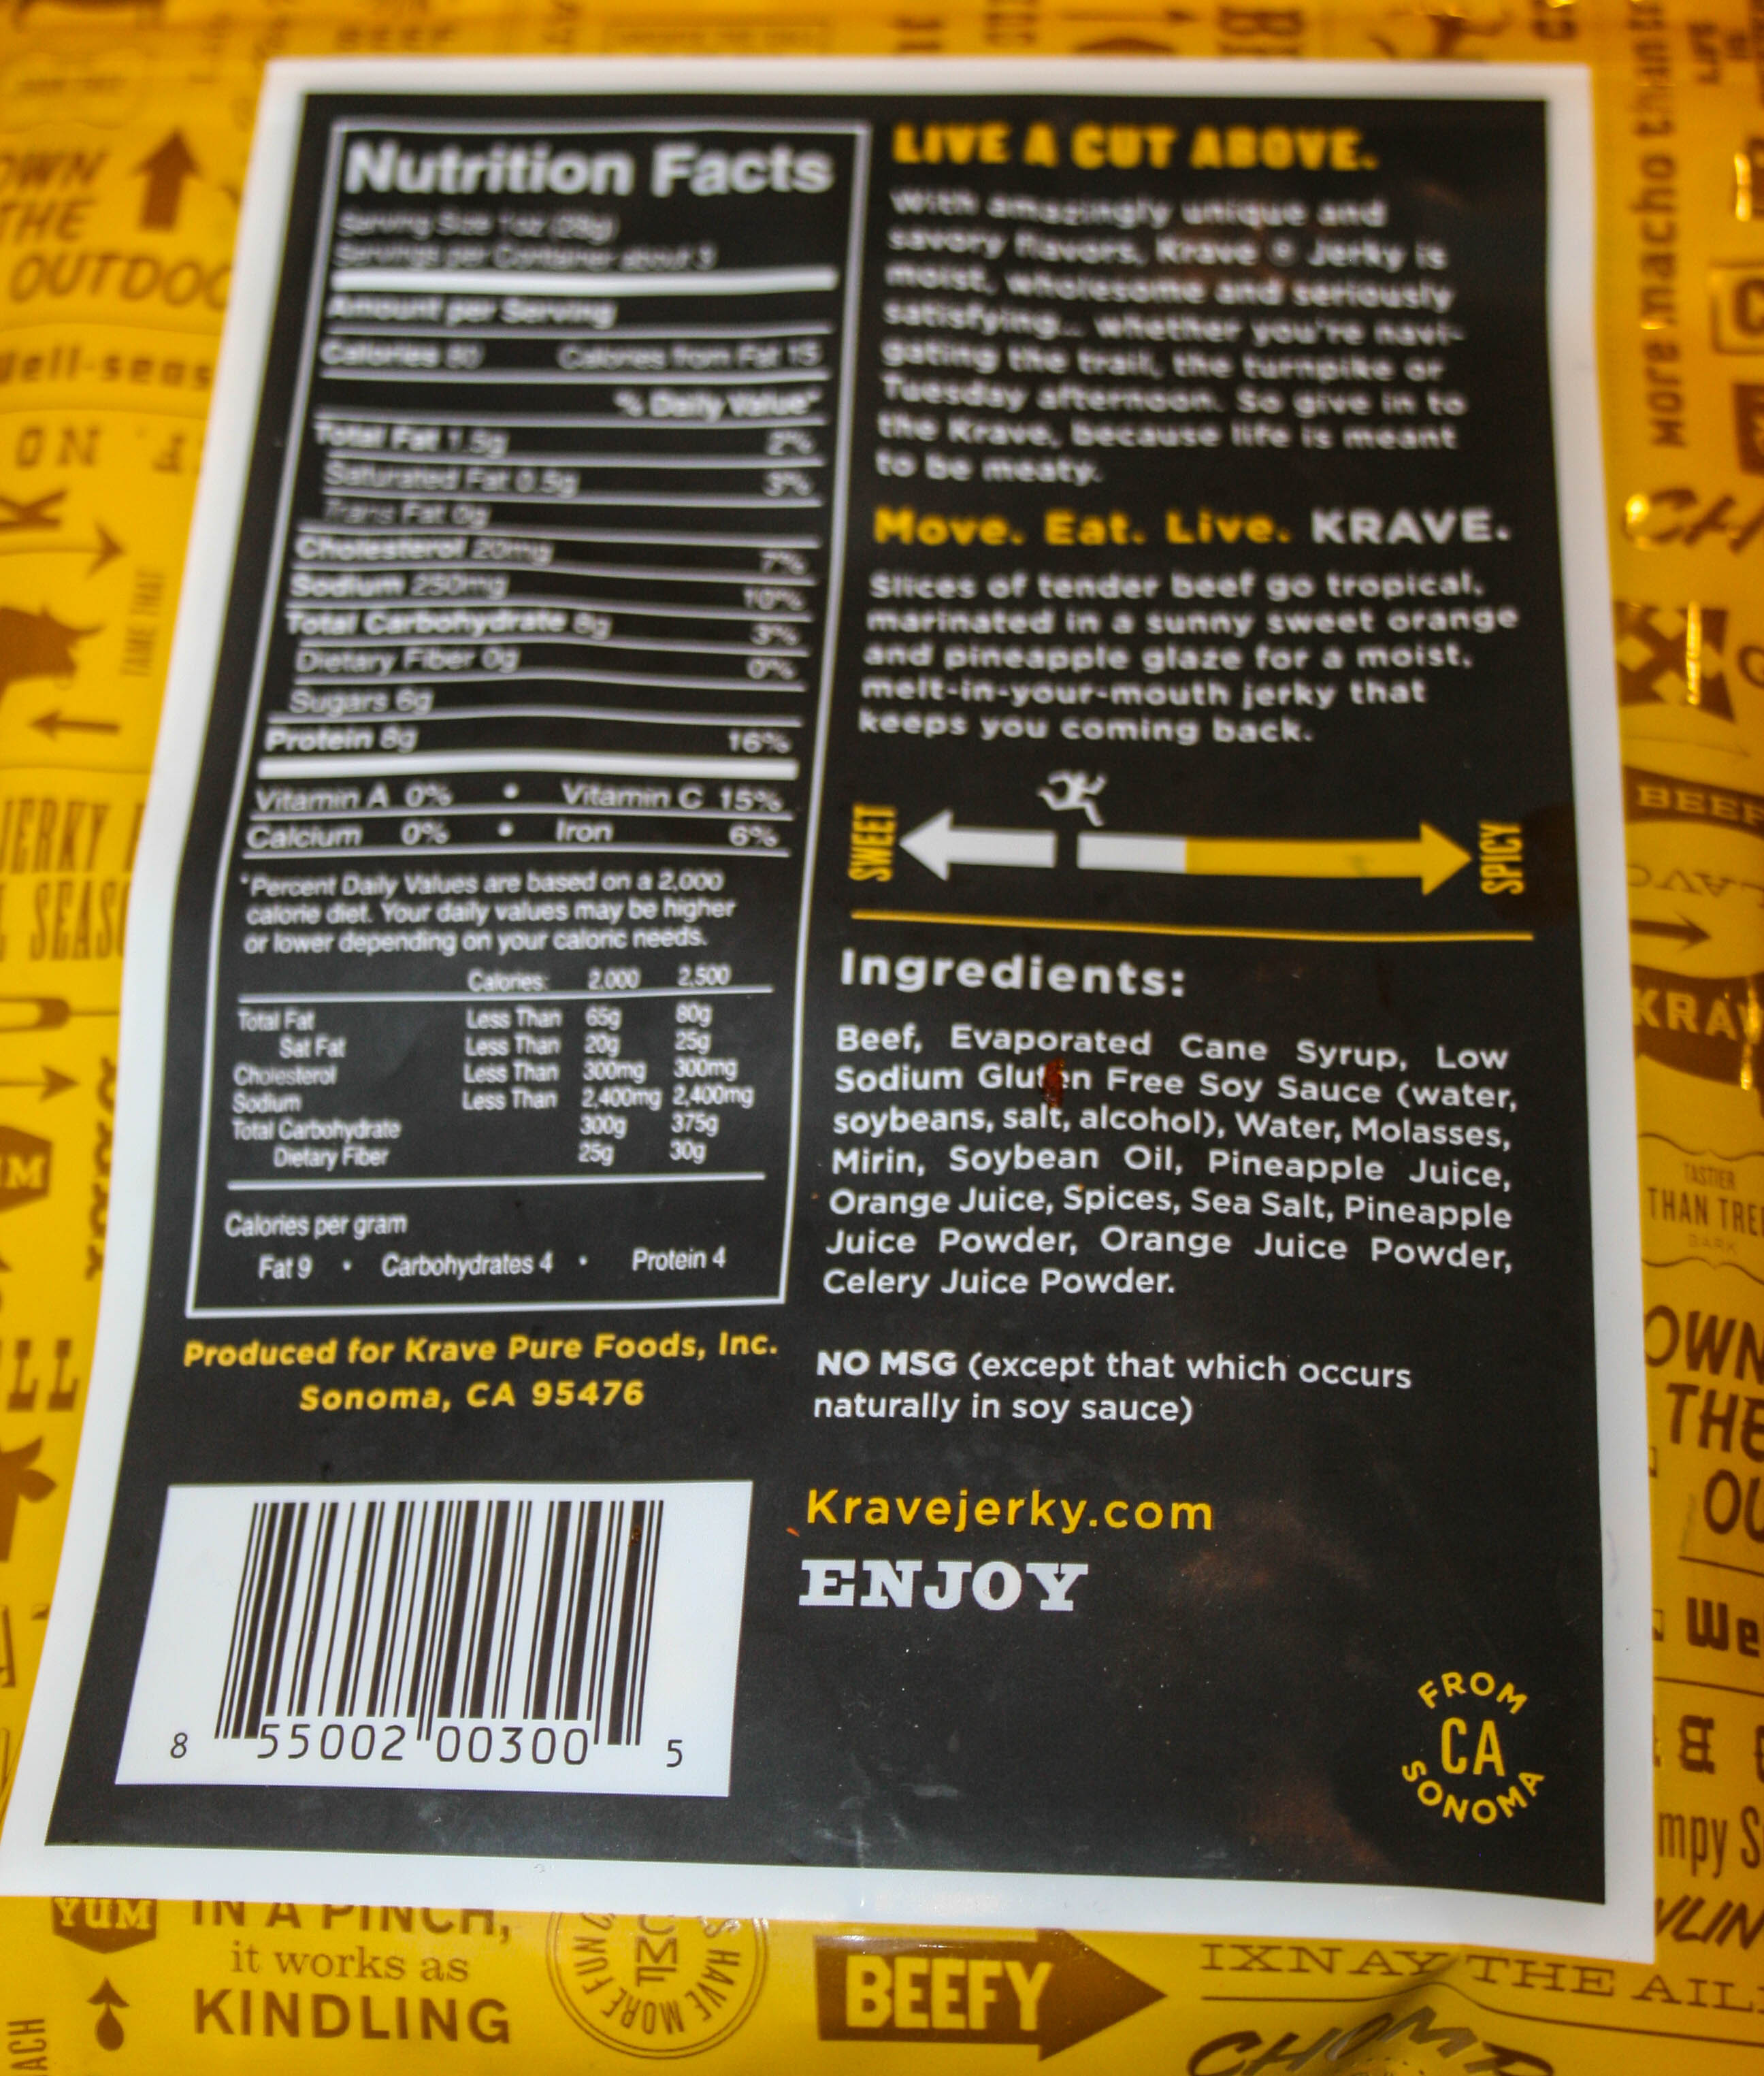 The ultimate meal nutrition facts